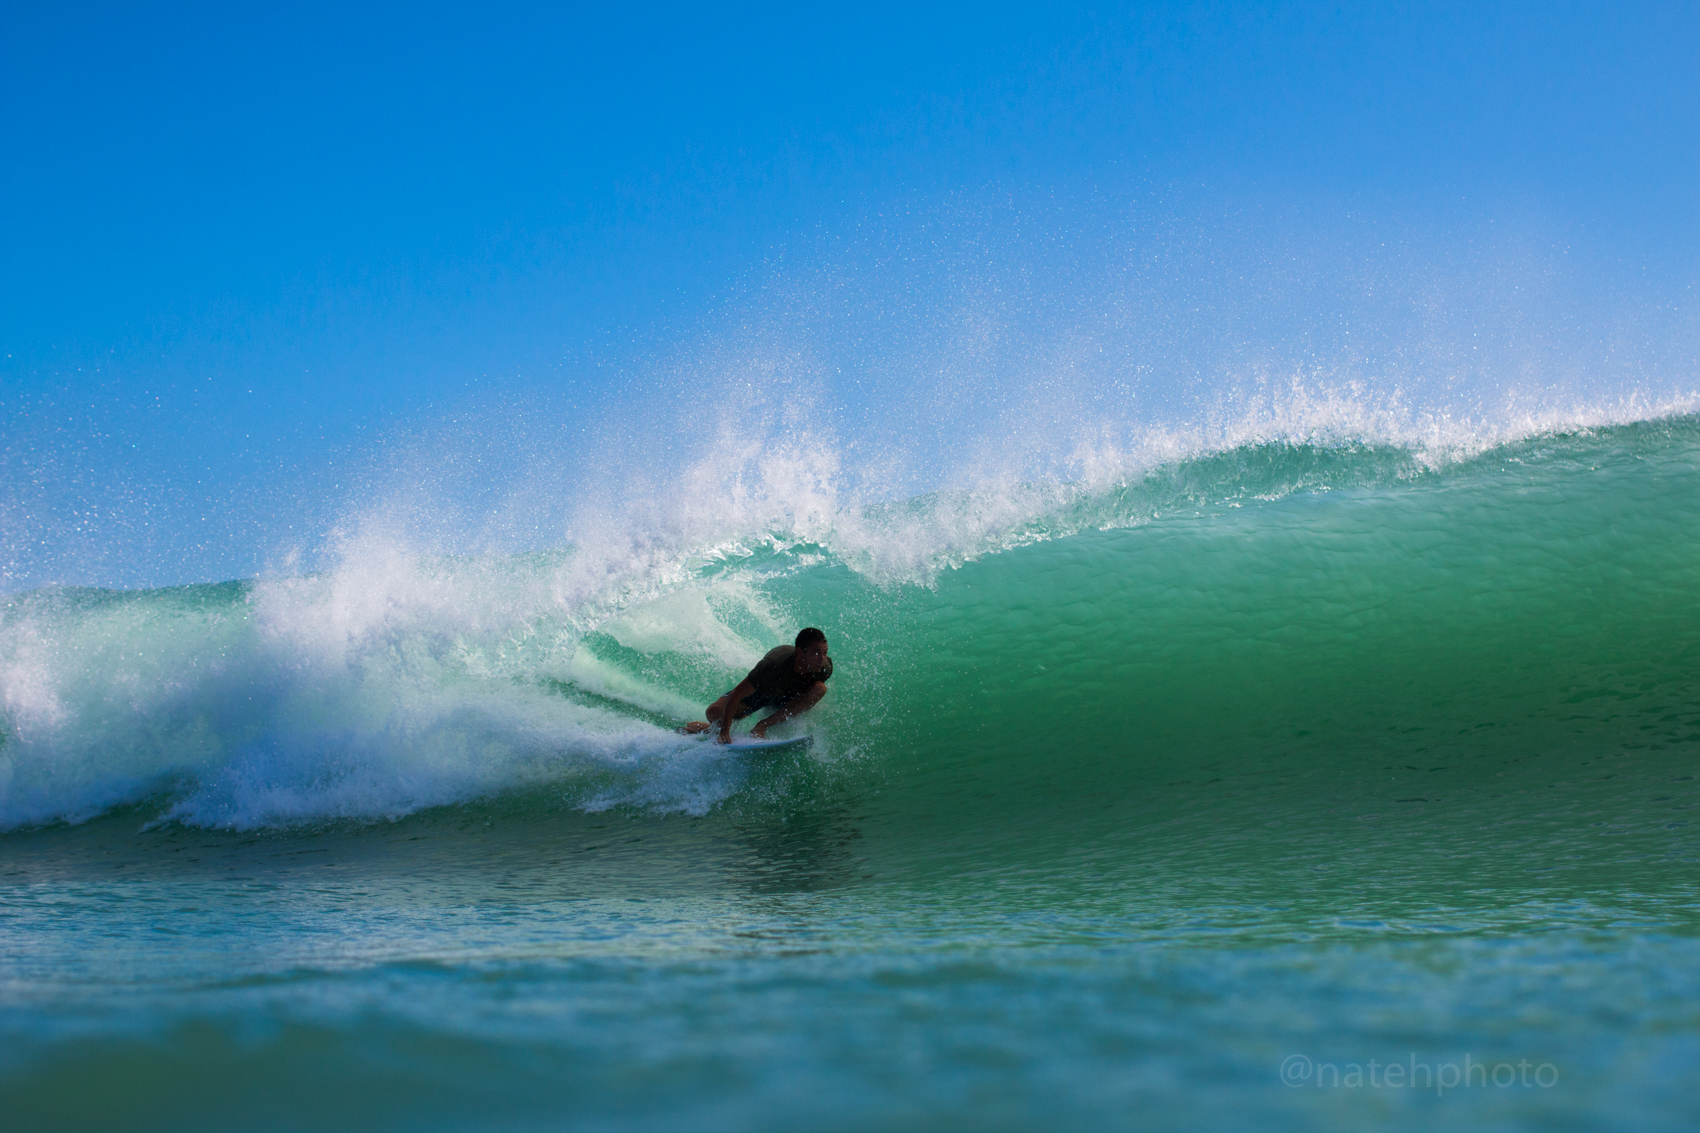 Wiley Robinson in the Barrel at Spanish House, FL. Photo by Nathaniel Harrington (natehphoto)